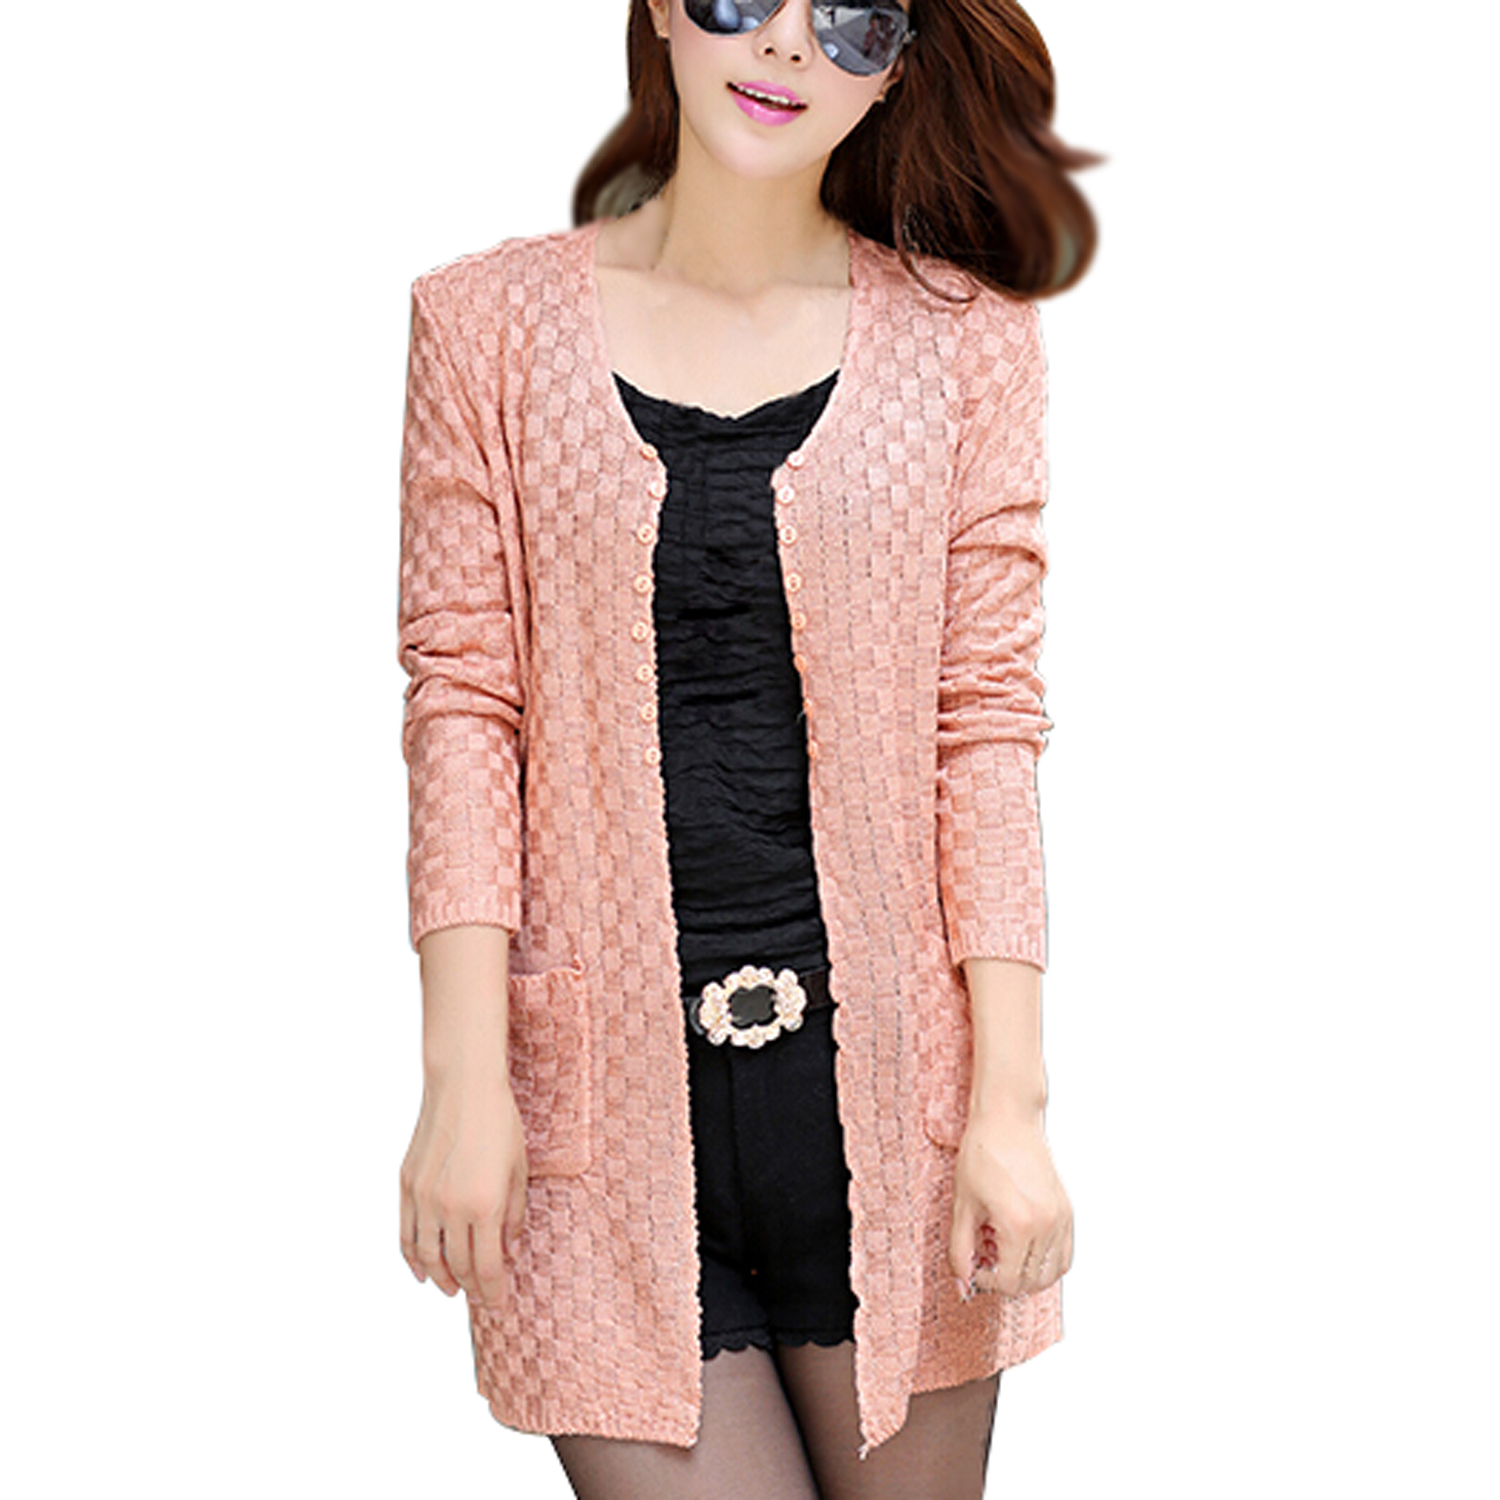 Shop for the cable knit sweater and vintage long cardigans for women including cashmere sweater, christmas sweaters, poncho sweater, pink sweater, black cardigan, white sweater for sale online at great prices from forex-2016.ga